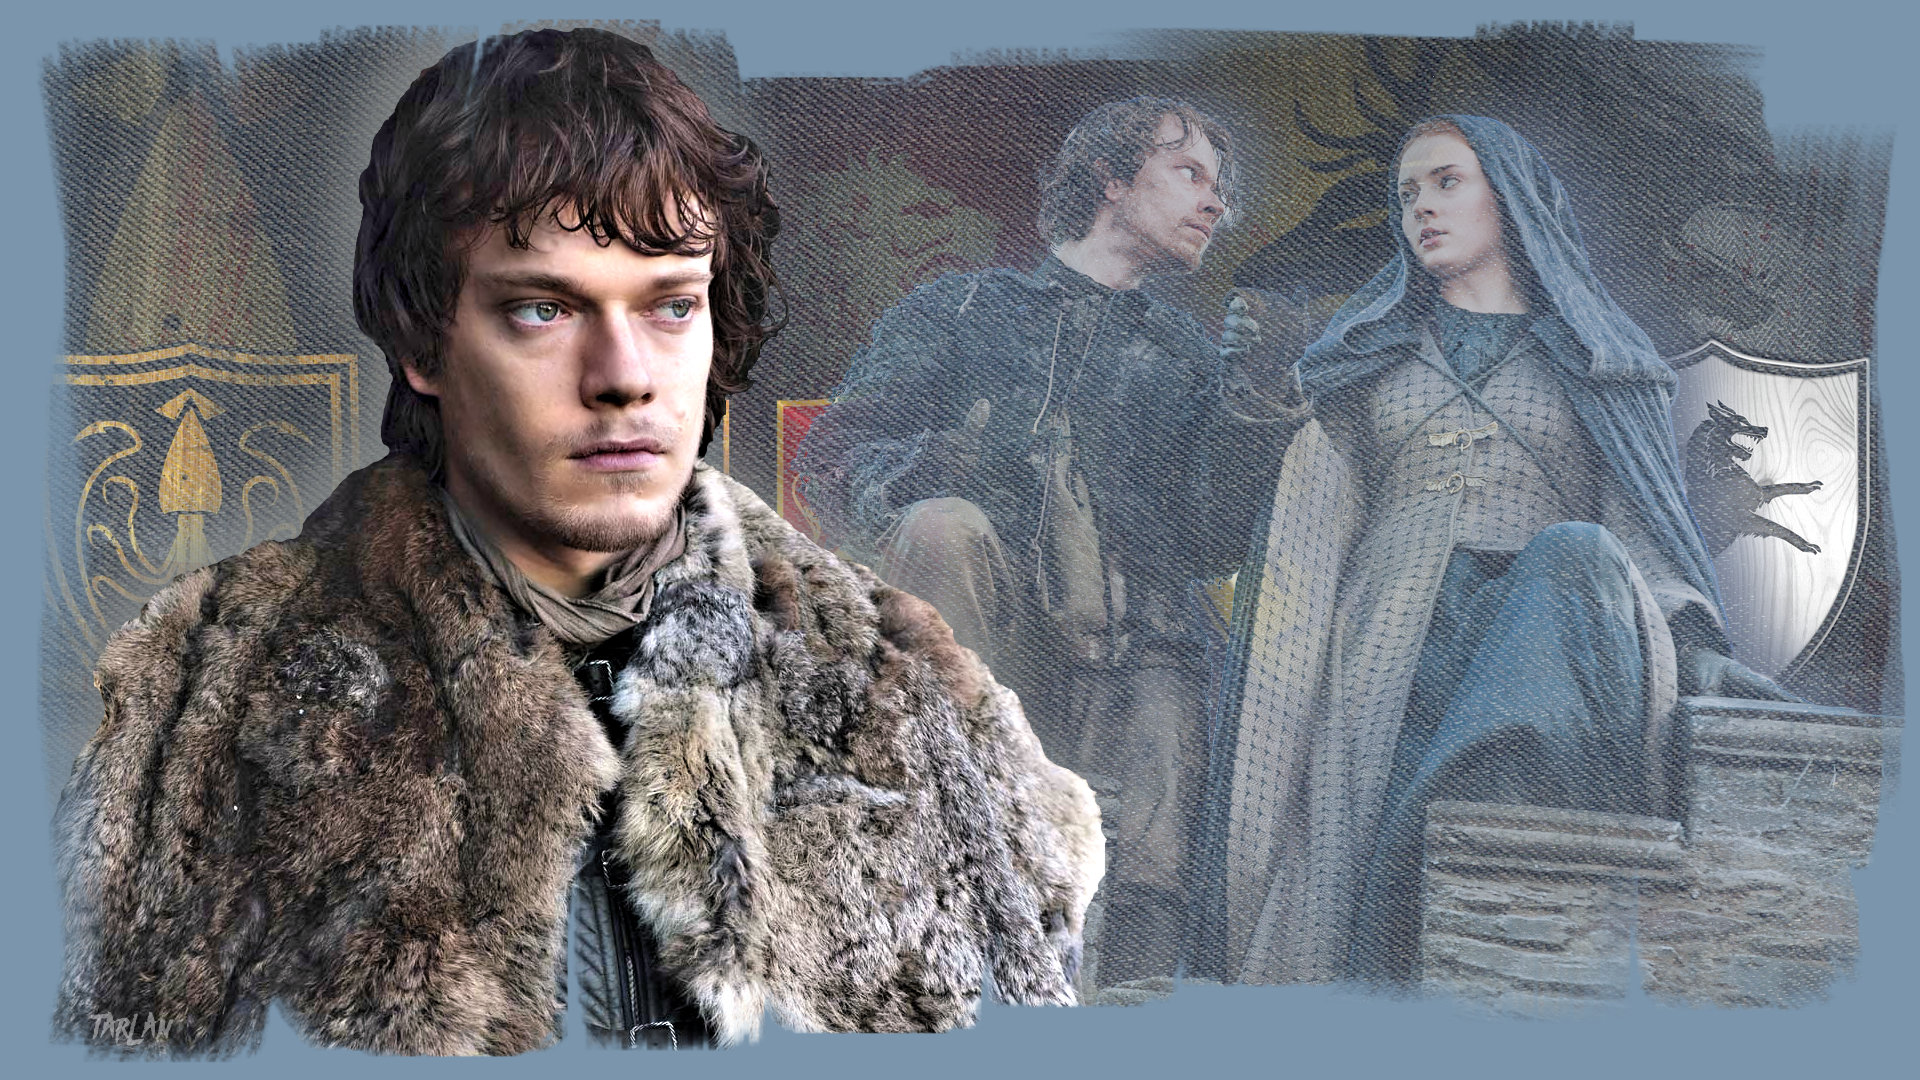 Game of Thrones - Theon and Sansa by Tarlan